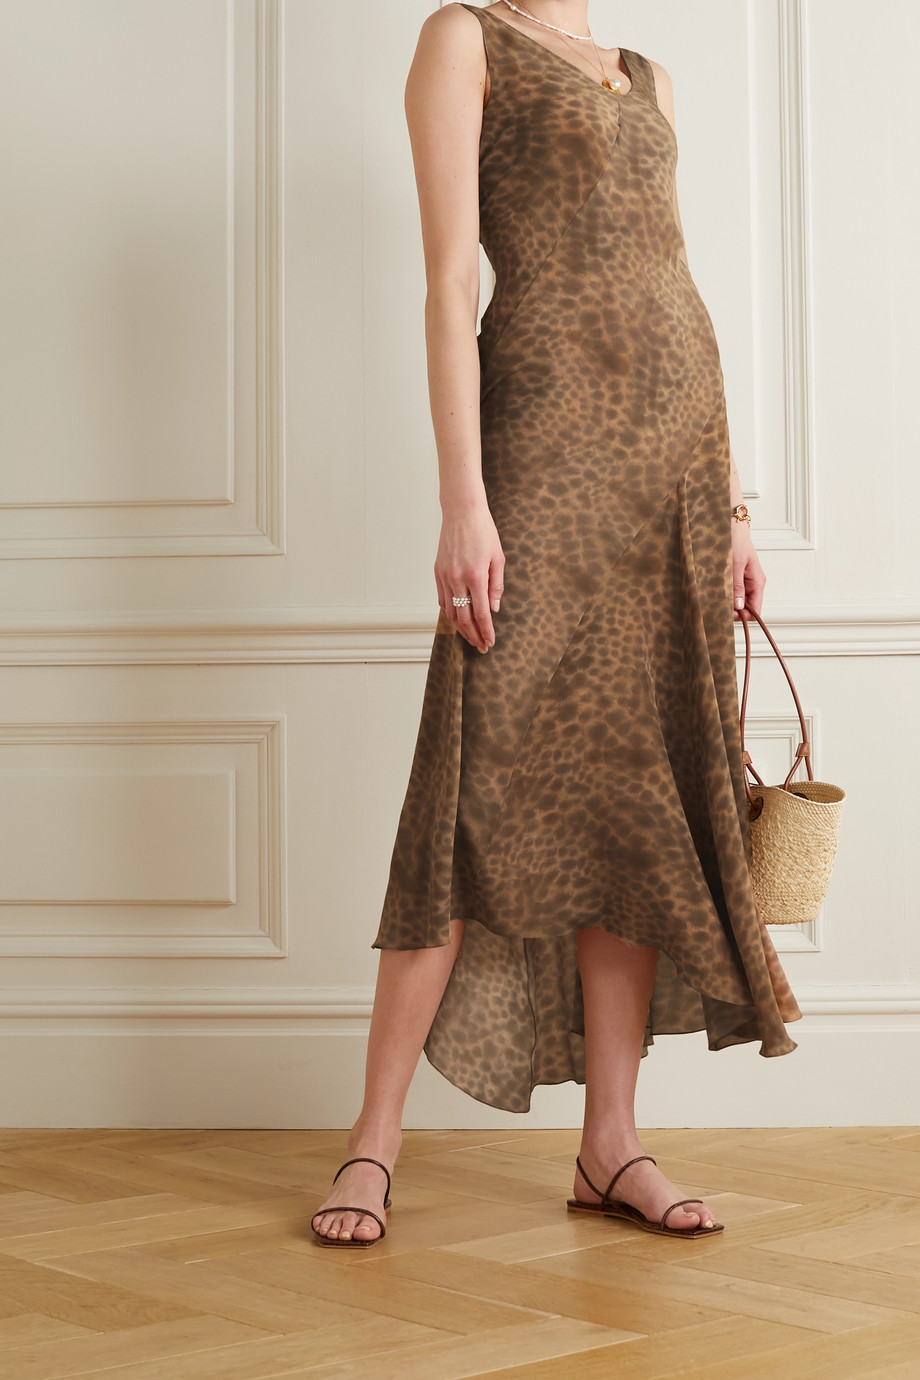 CORTANA + NET SUSTAIN Felino asymmetric leopard-print silk maxi dress